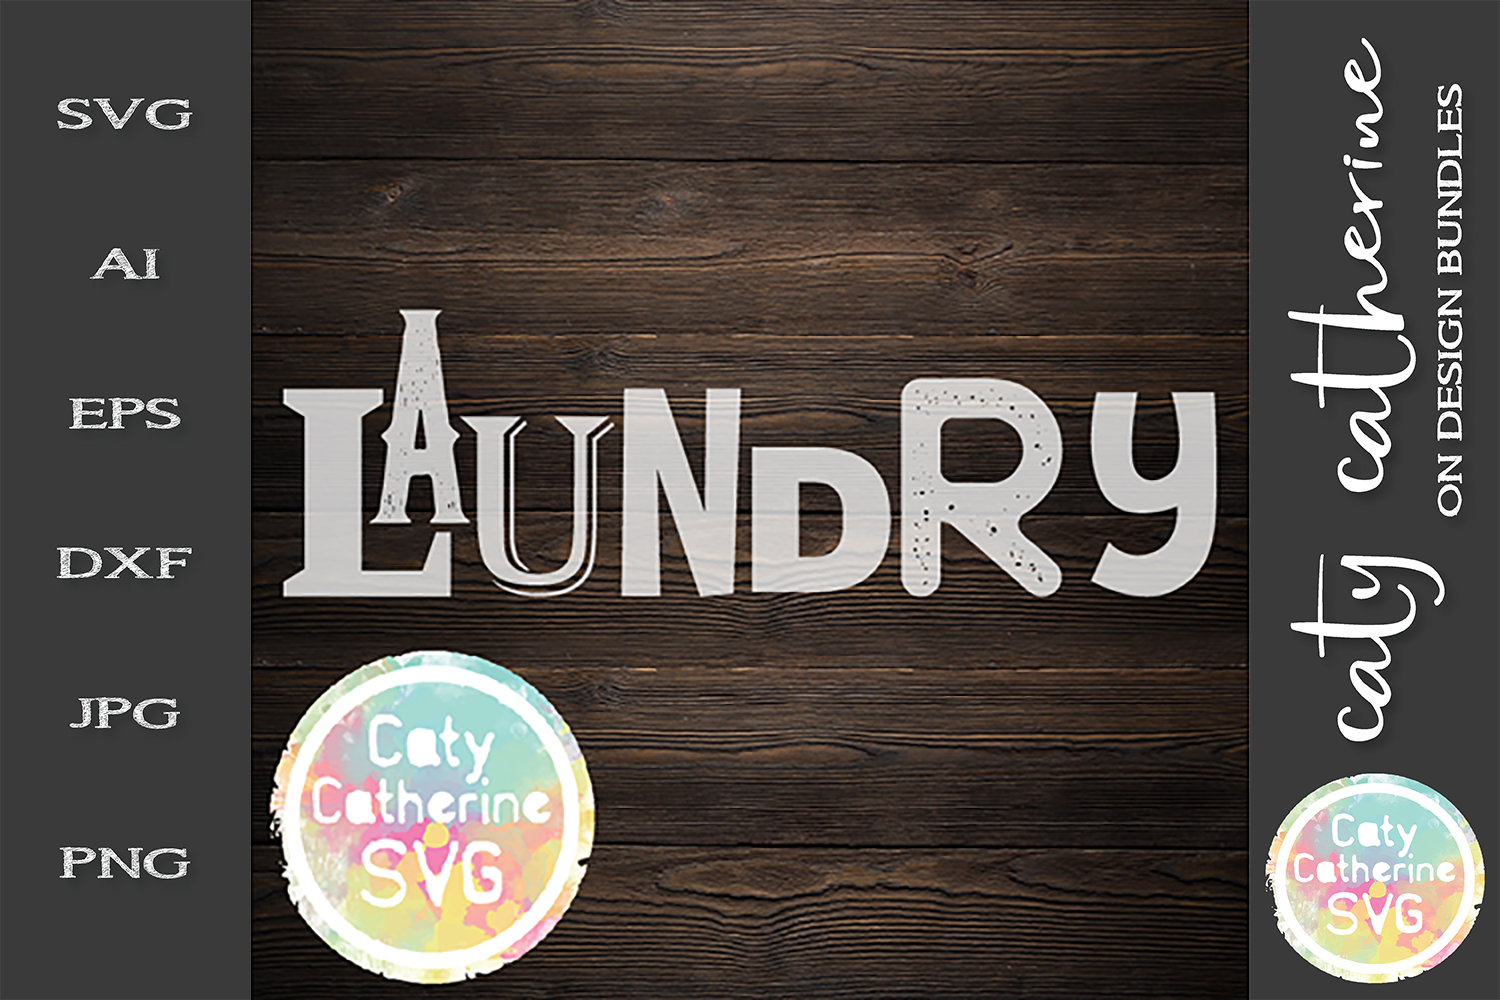 Laundry Utility Room Sign SVG Cut File example image 1